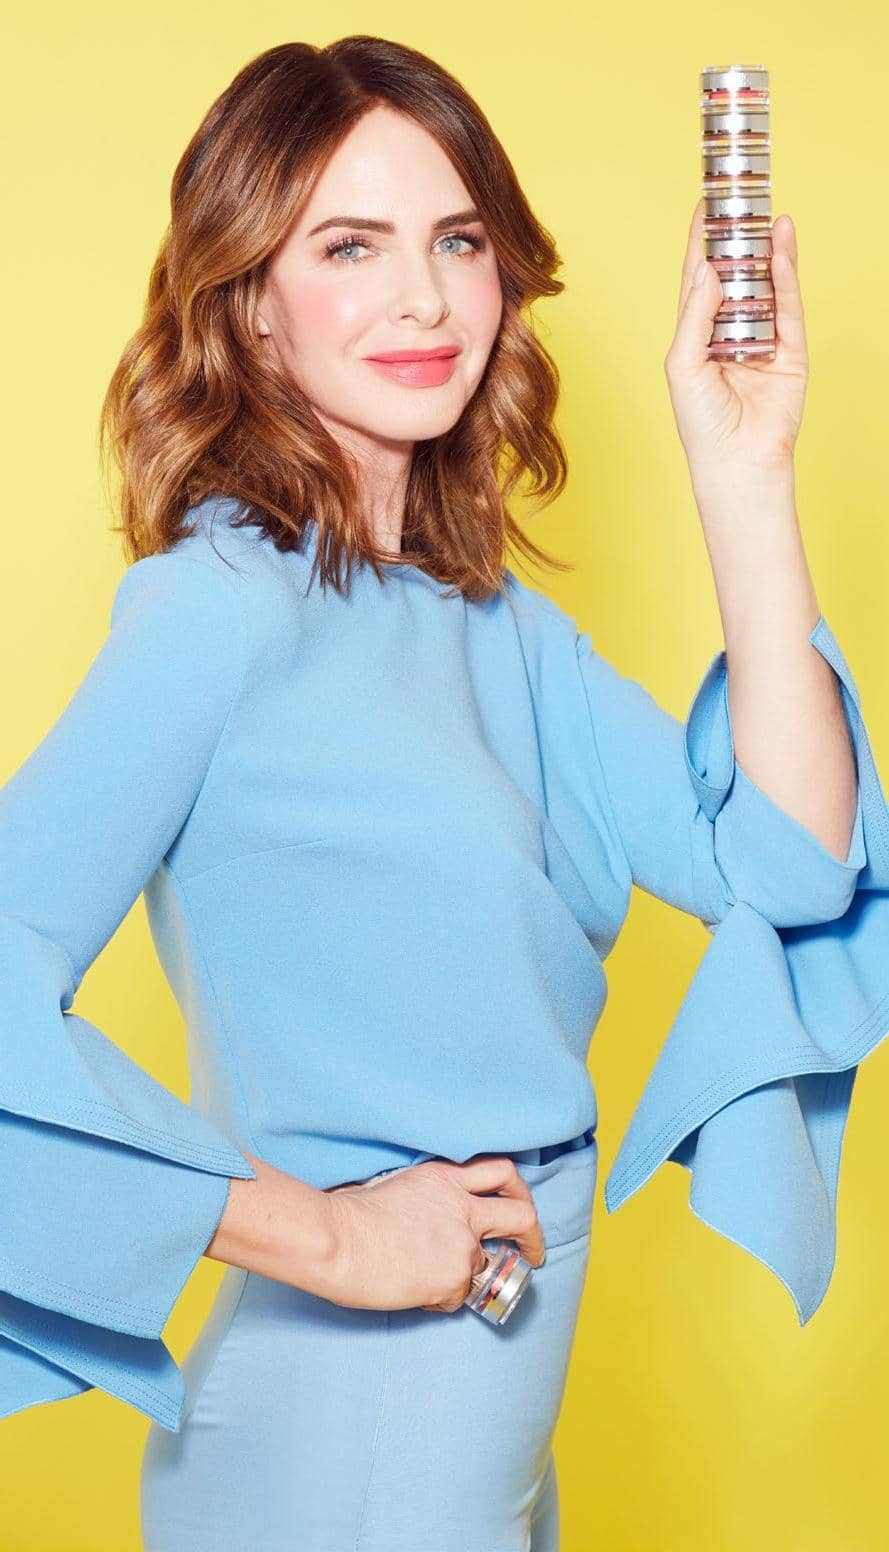 Trinny's TOP TIPS!